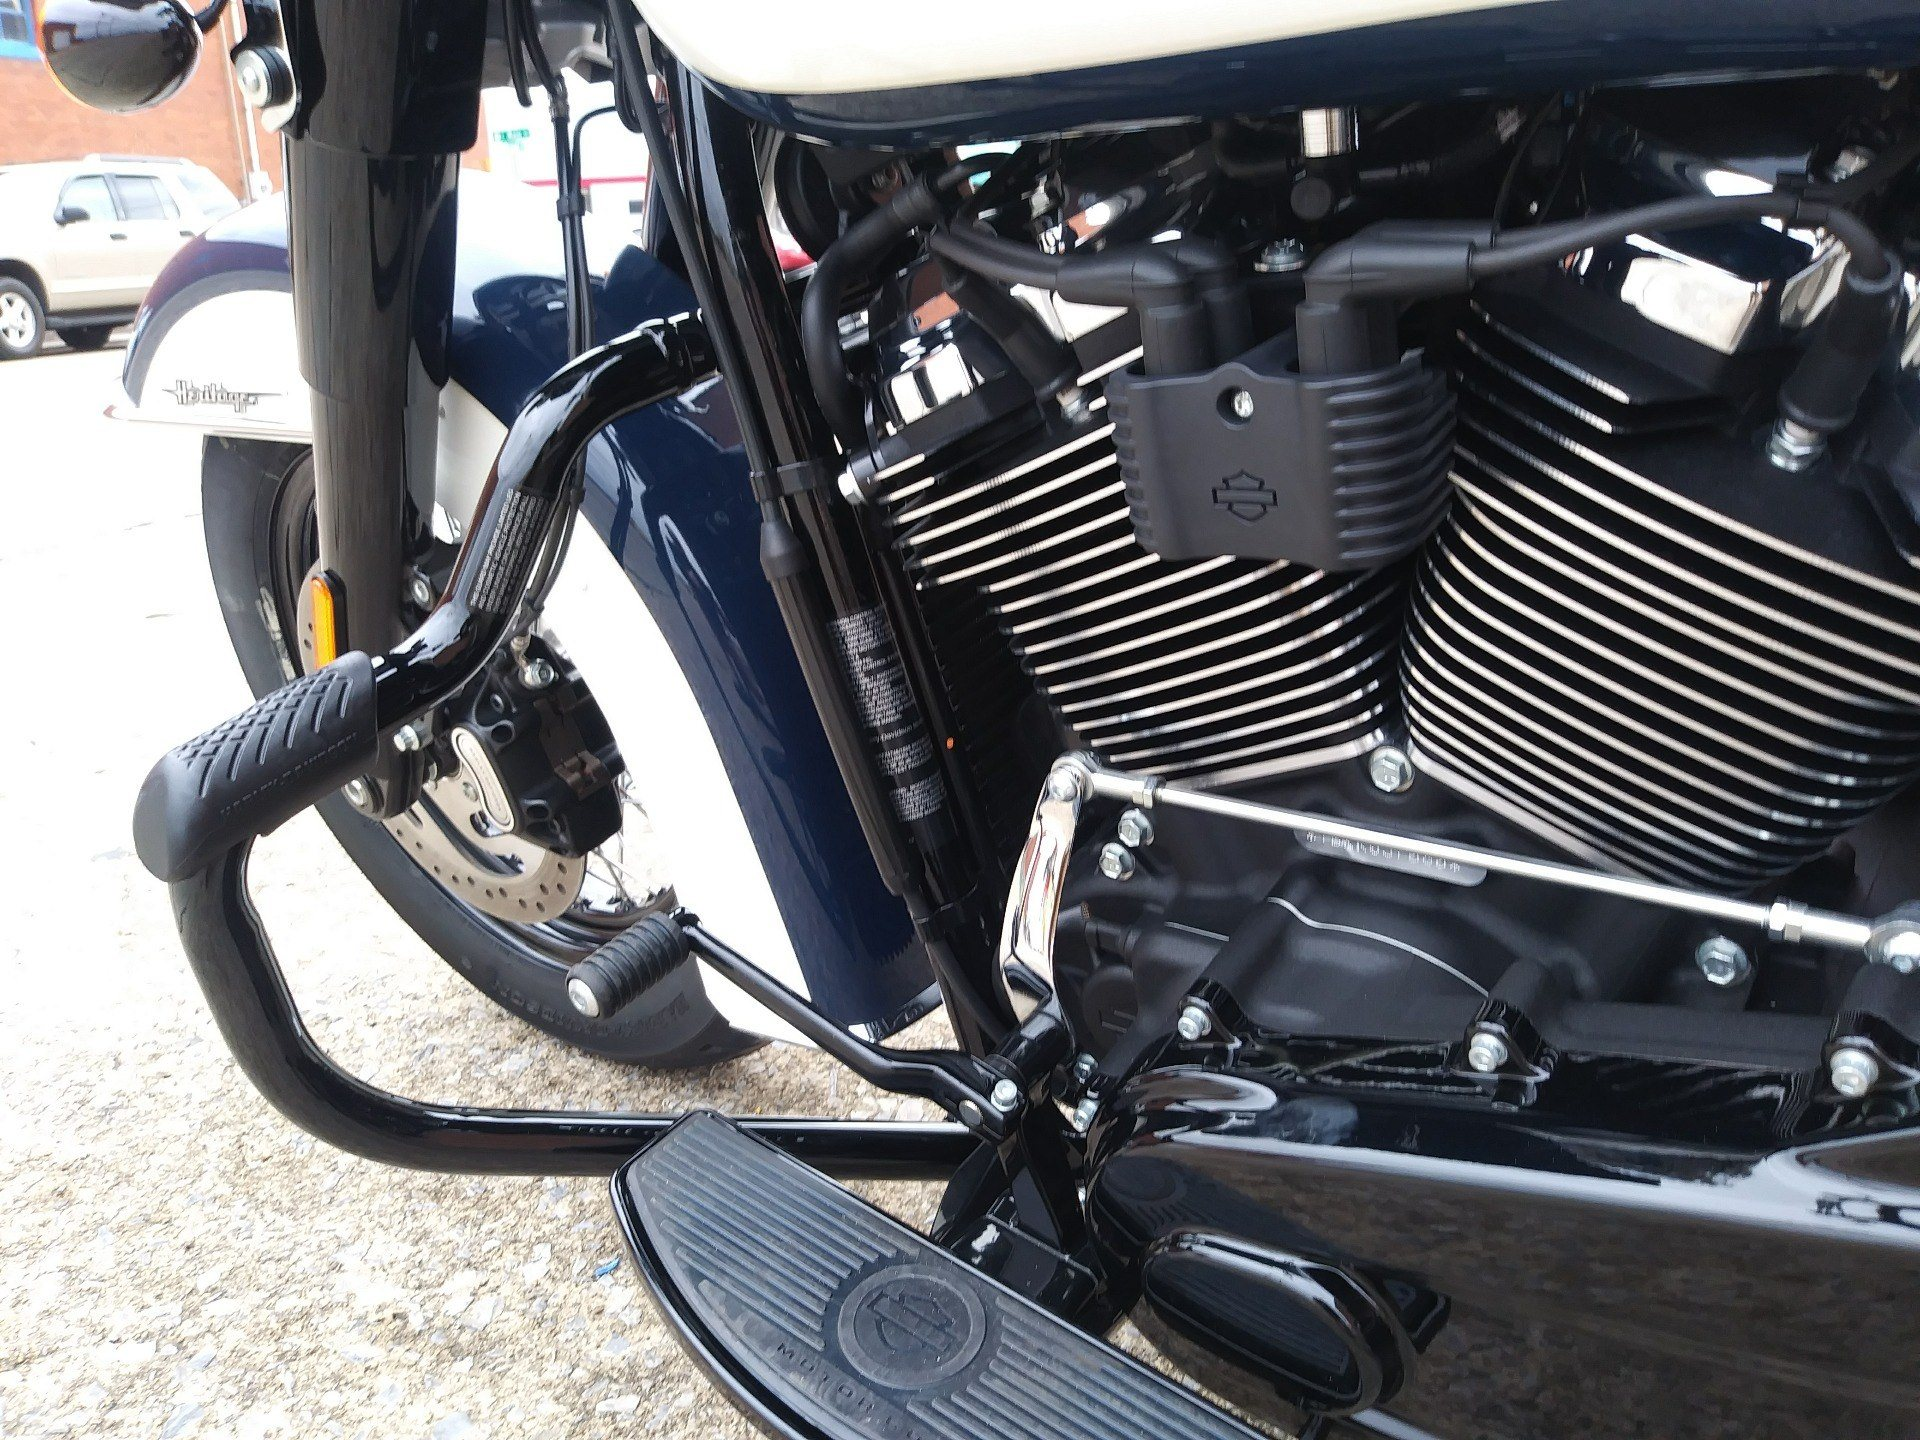 2019 Harley-Davidson Heritage Classic 114 in Kingsport, Tennessee - Photo 18